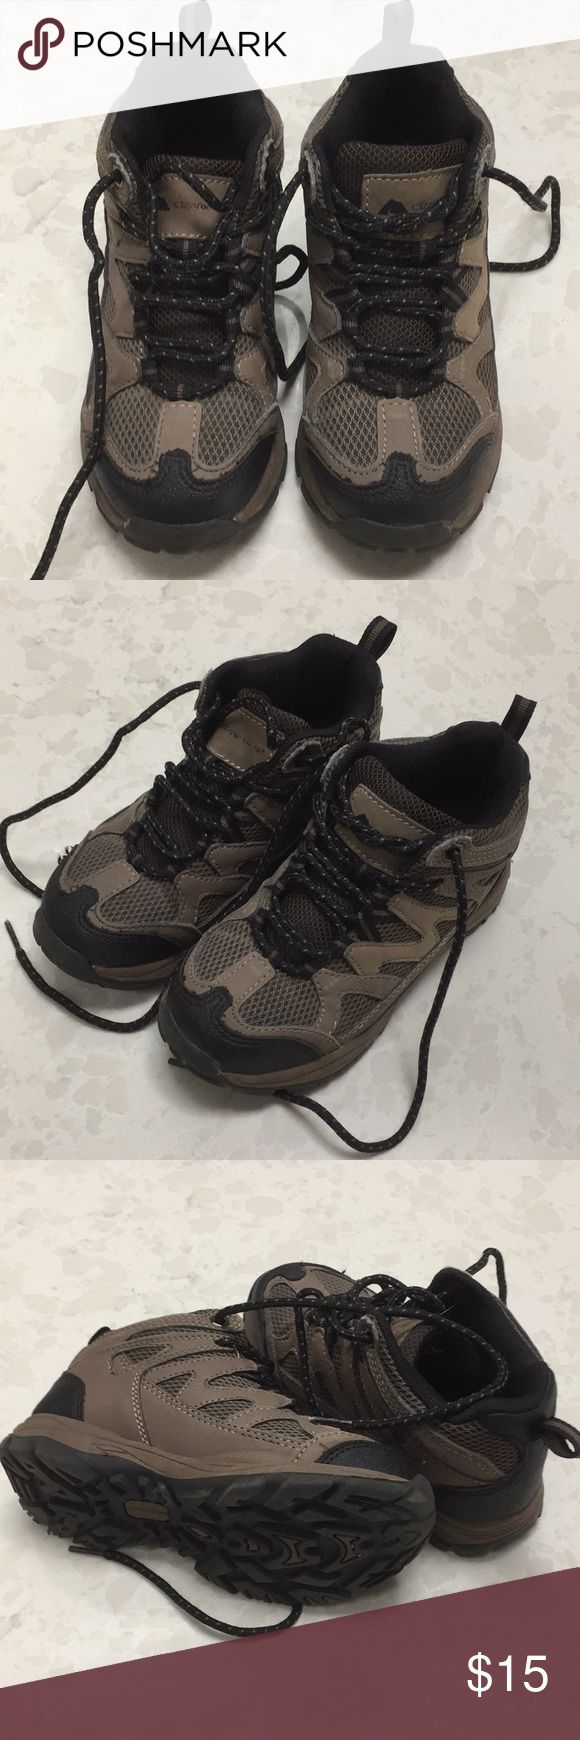 Kid hiking boots-size 12 Kid hiking boots- like new- size 12 Only used a couple time and were outgrown. ozark Shoes Boots